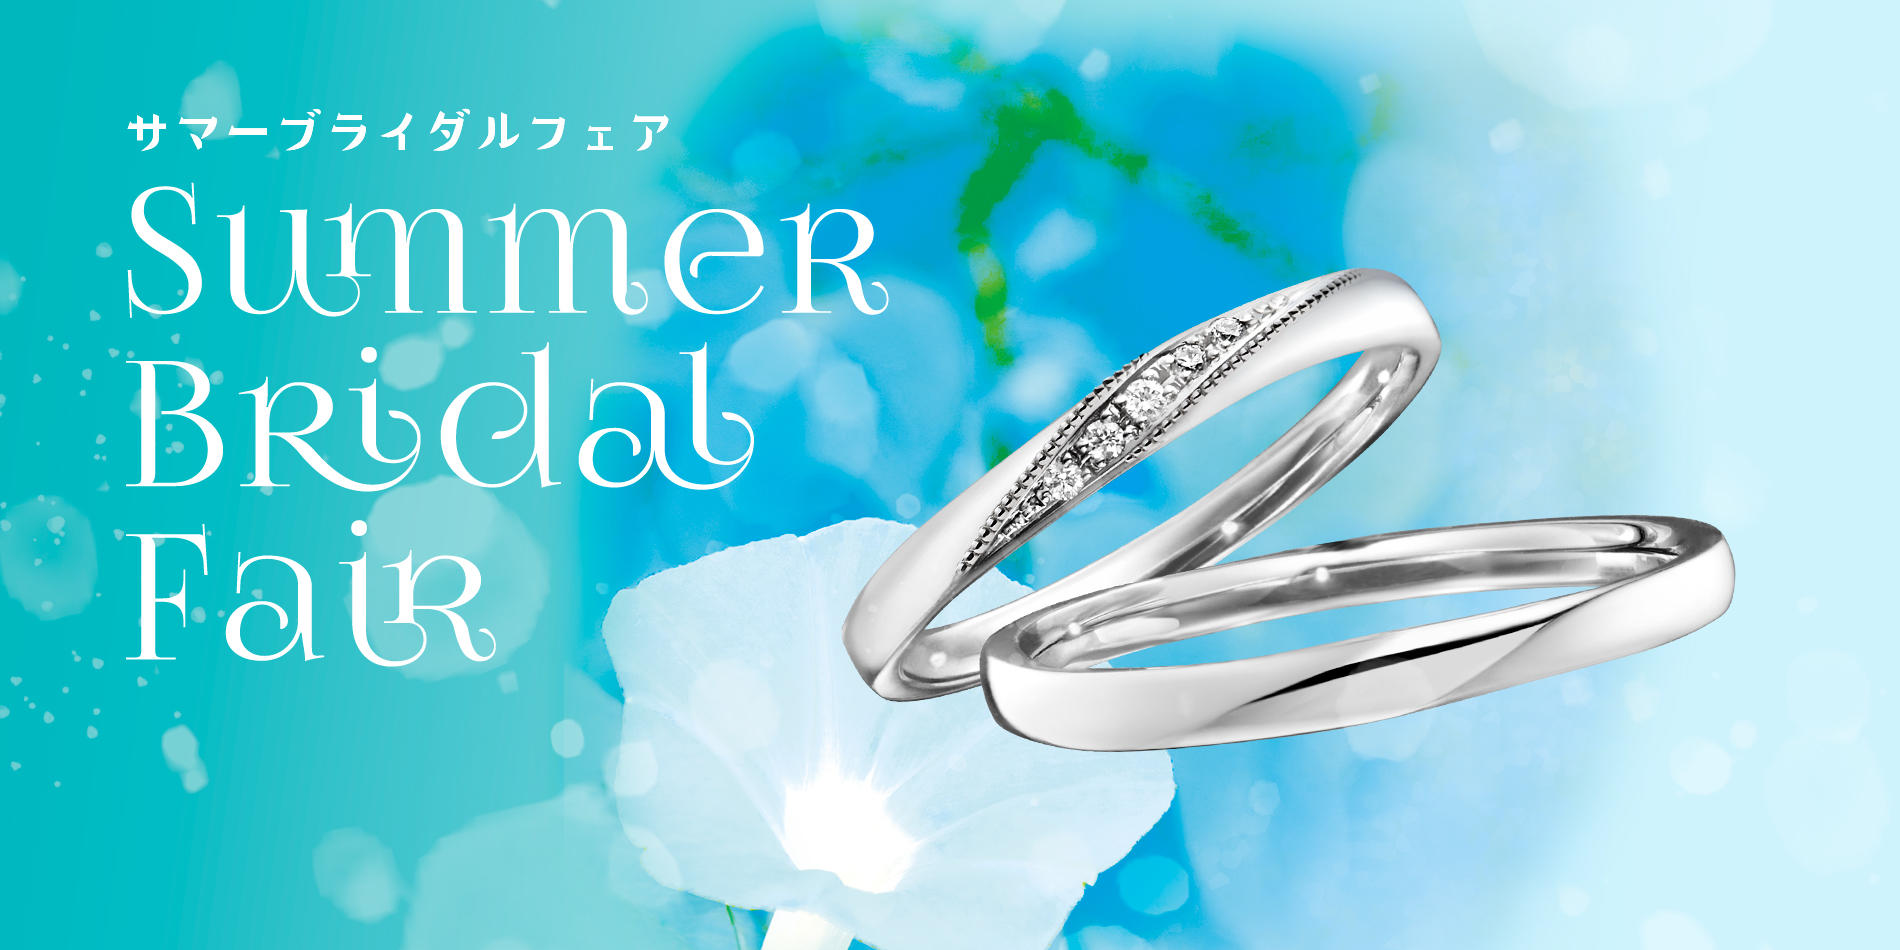 「Summer Bridal Fair」開催